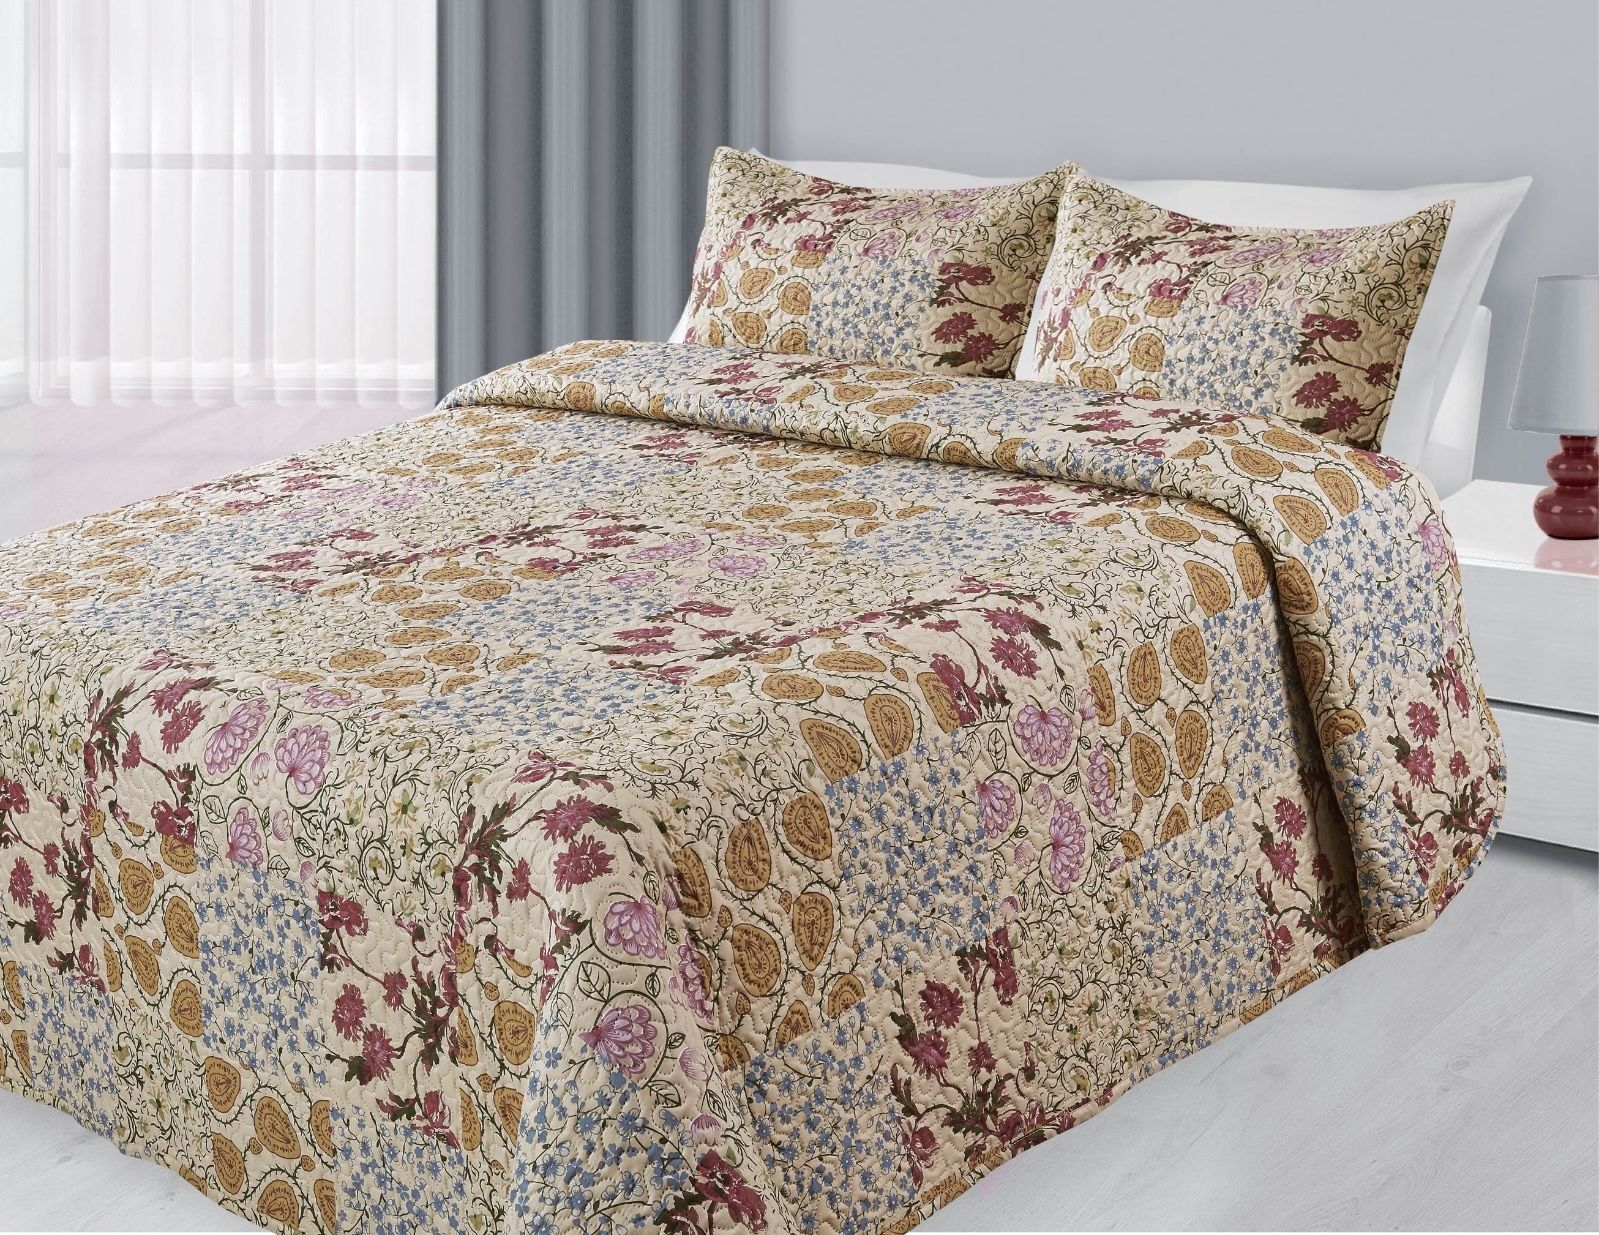 3-Piece Reversible Quilted Printed Bedspread Coverlet Beige Patchwork Flowers King Size by